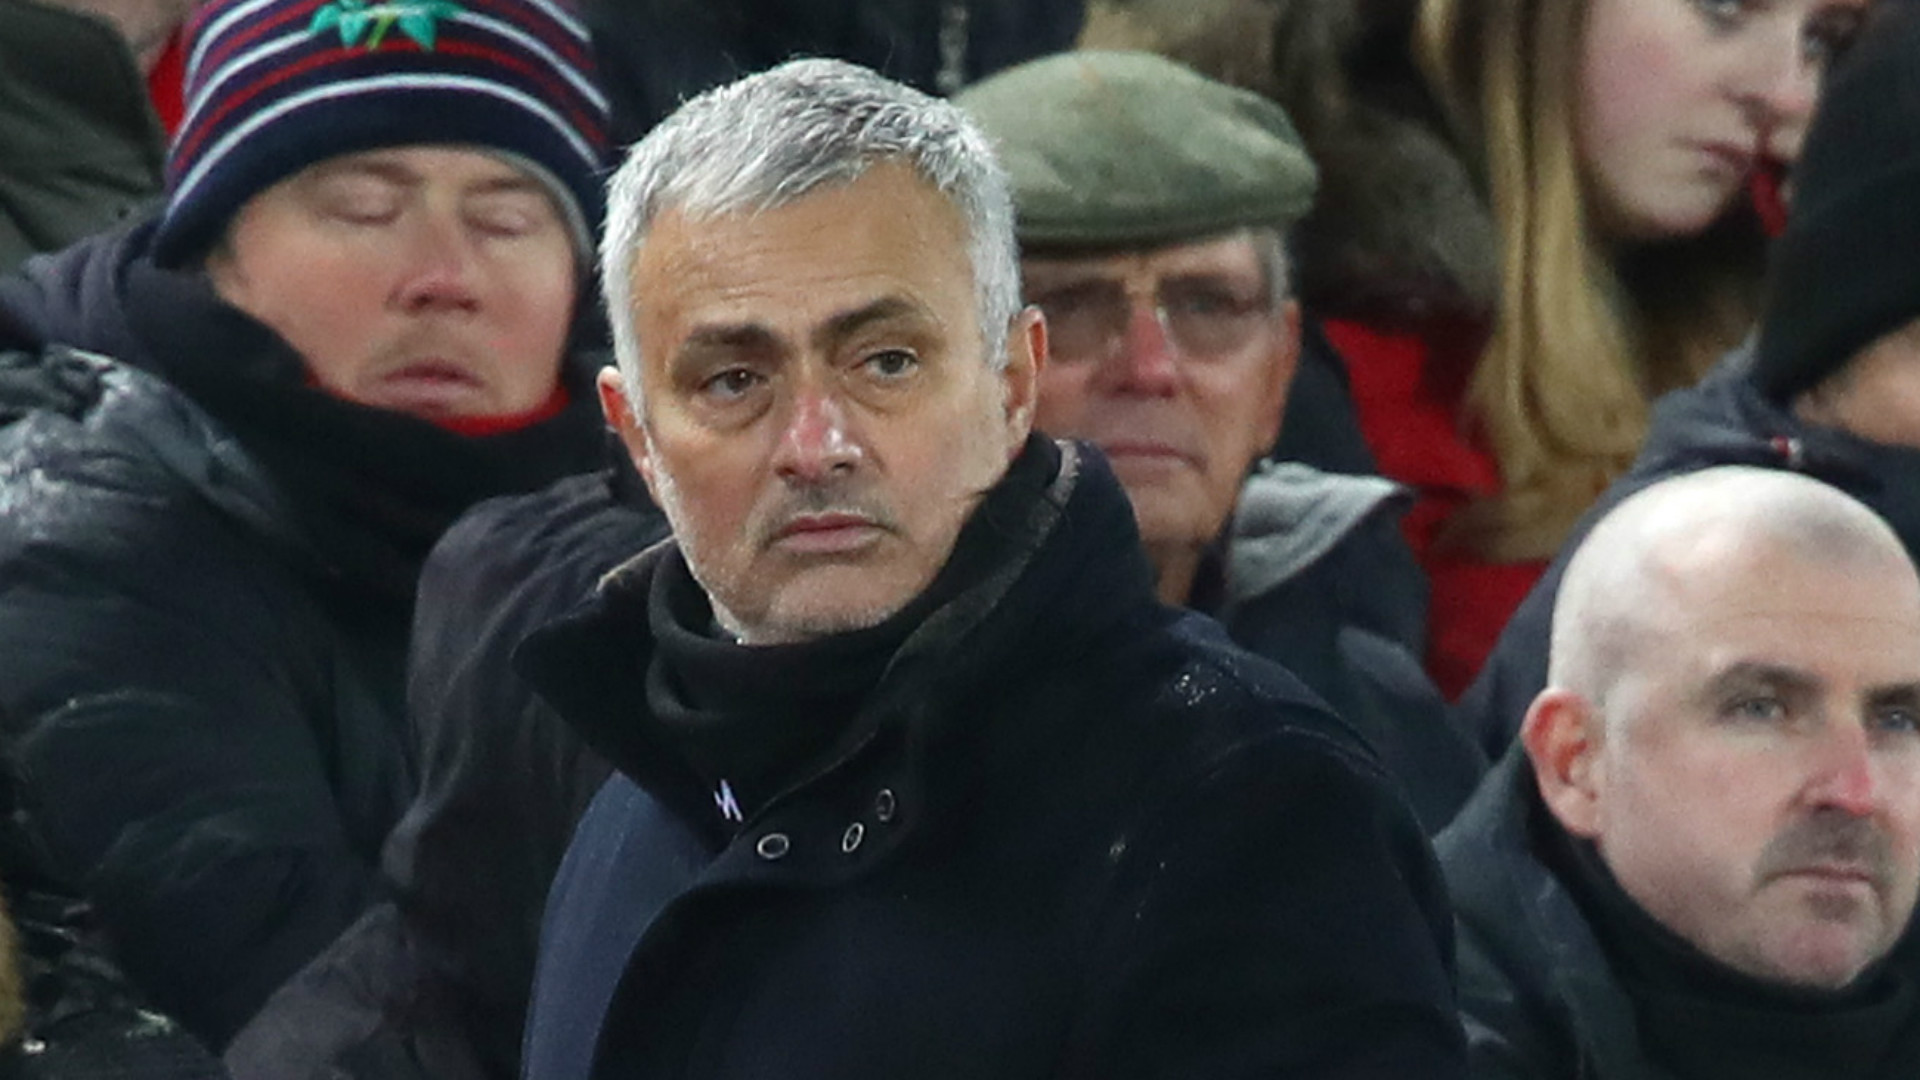 Transfer news and rumours LIVE: Mourinho sacking would cost Man Utd £24m